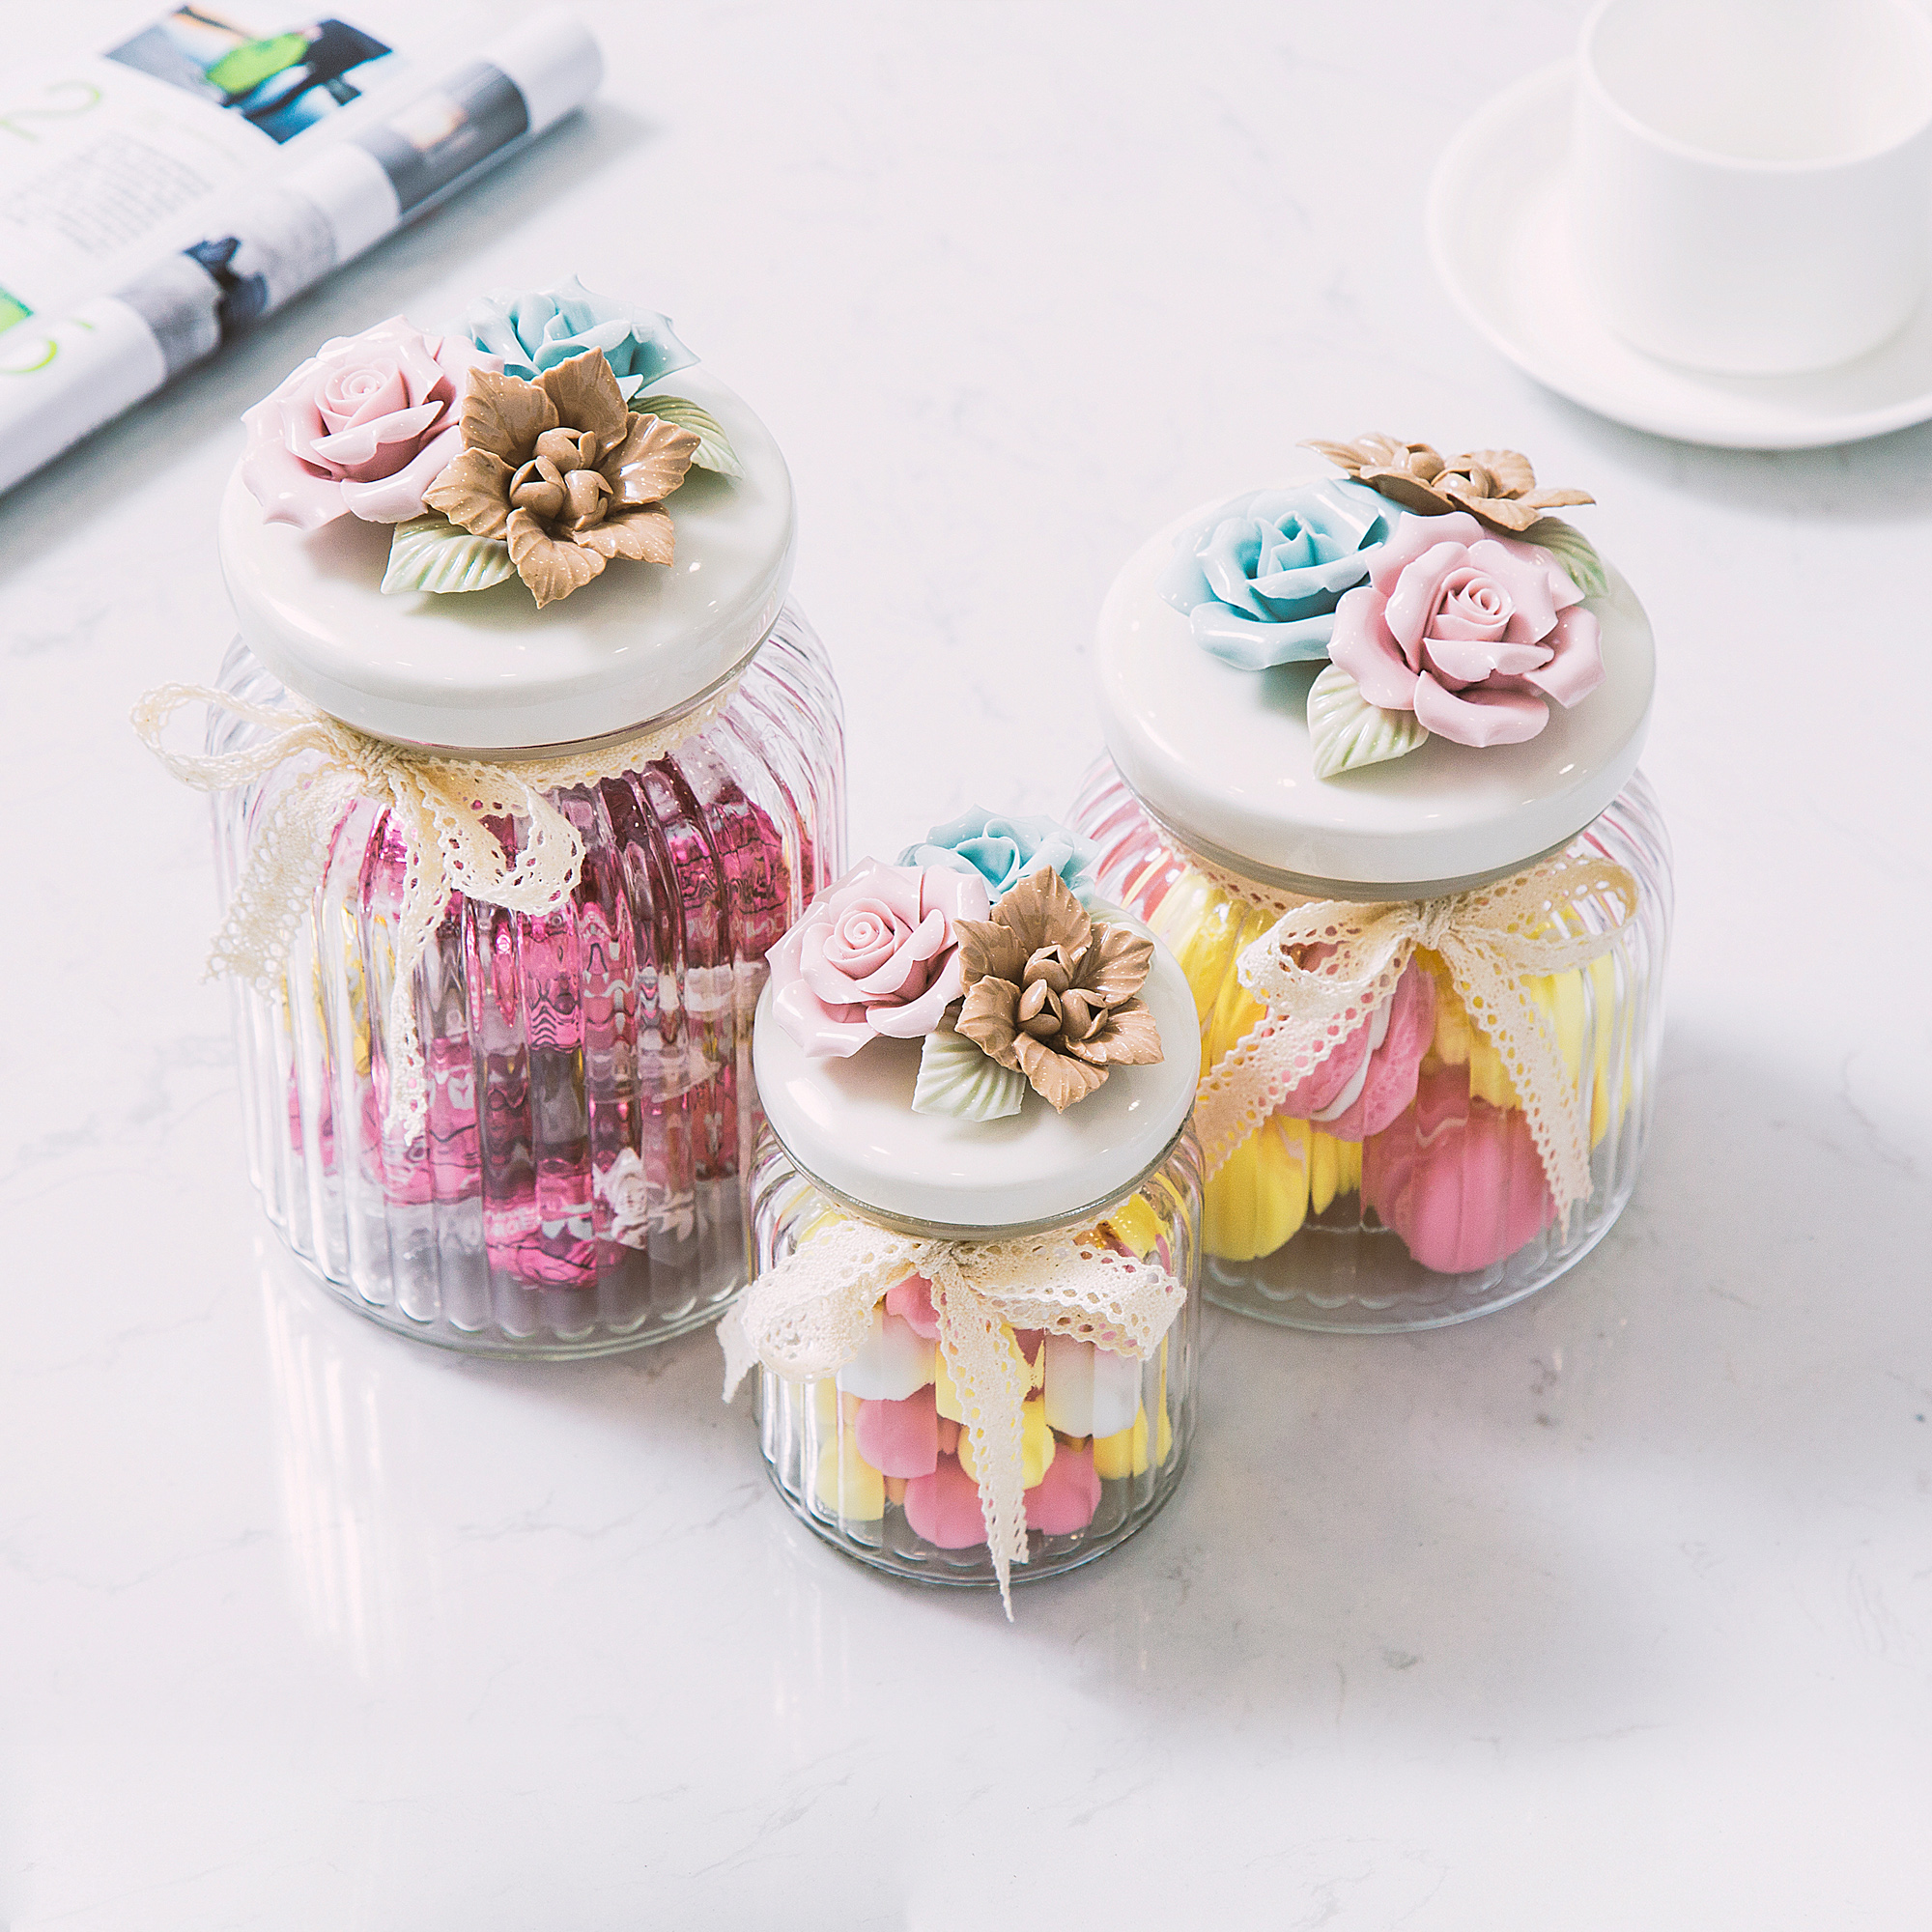 Usd 1299 creative home crafts wedding decoration candy jar glass creative home crafts wedding decoration candy jar glass candy jar sealed storage jar with cover european junglespirit Image collections